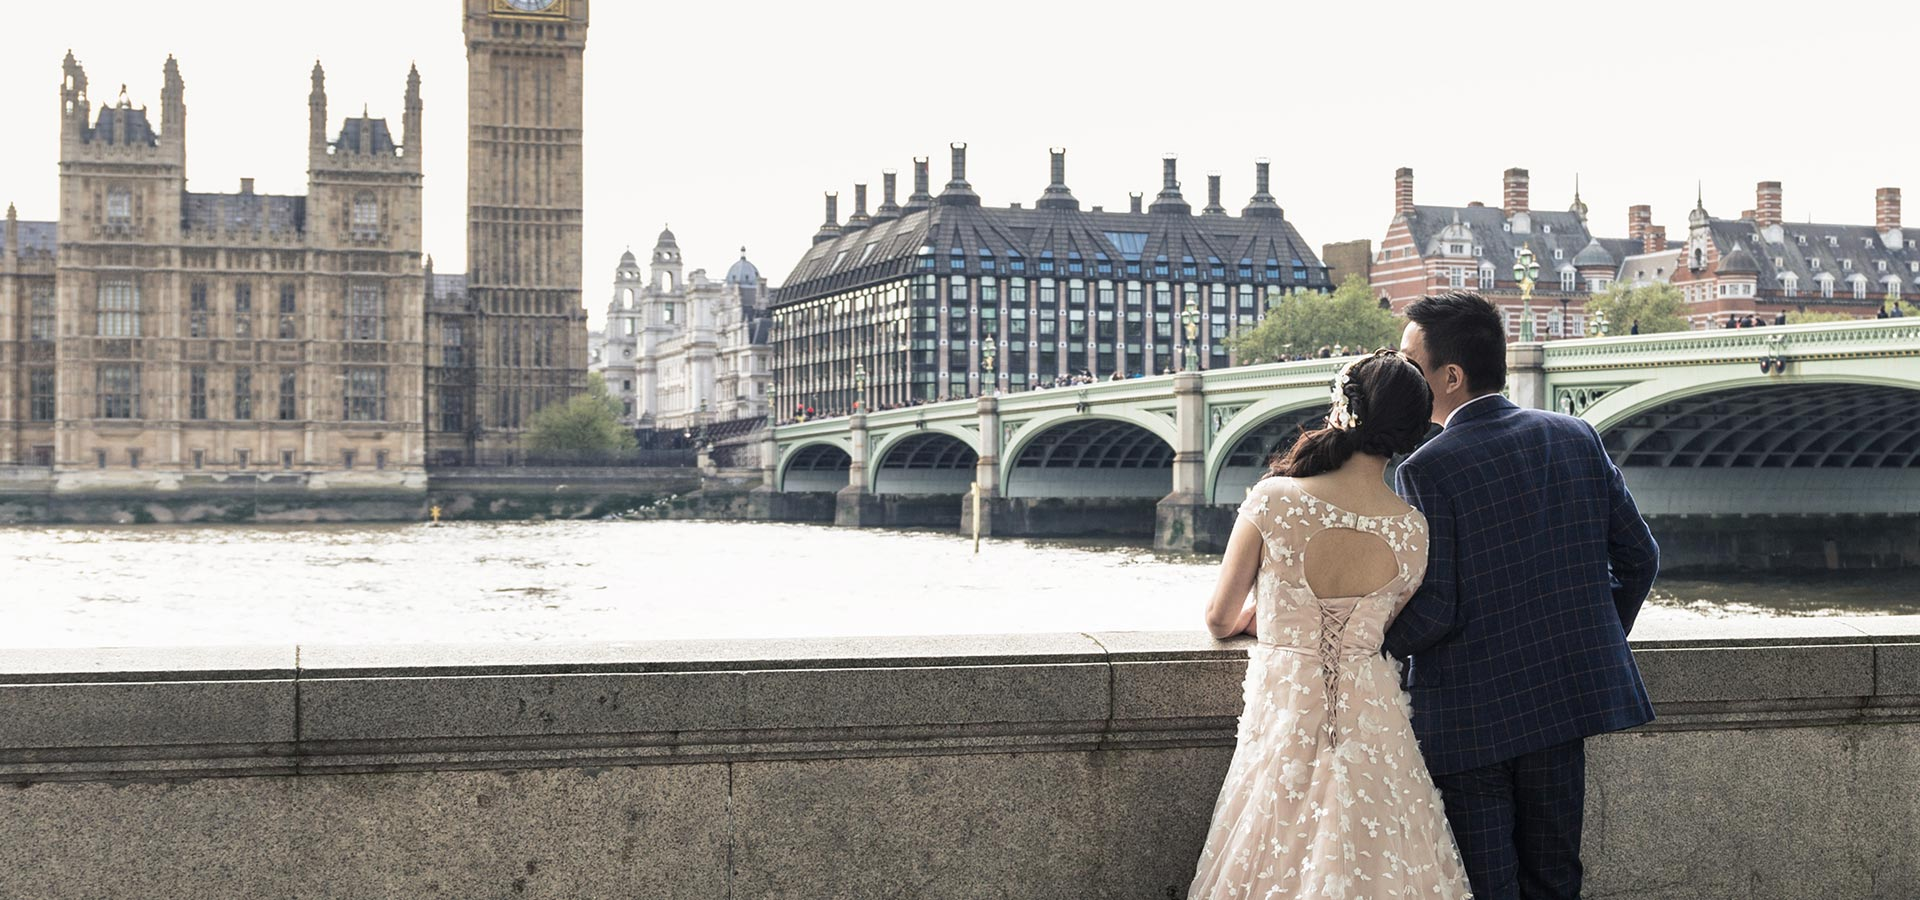 10 Things You Must Do In London for a Fun and Romantic Honeymoon